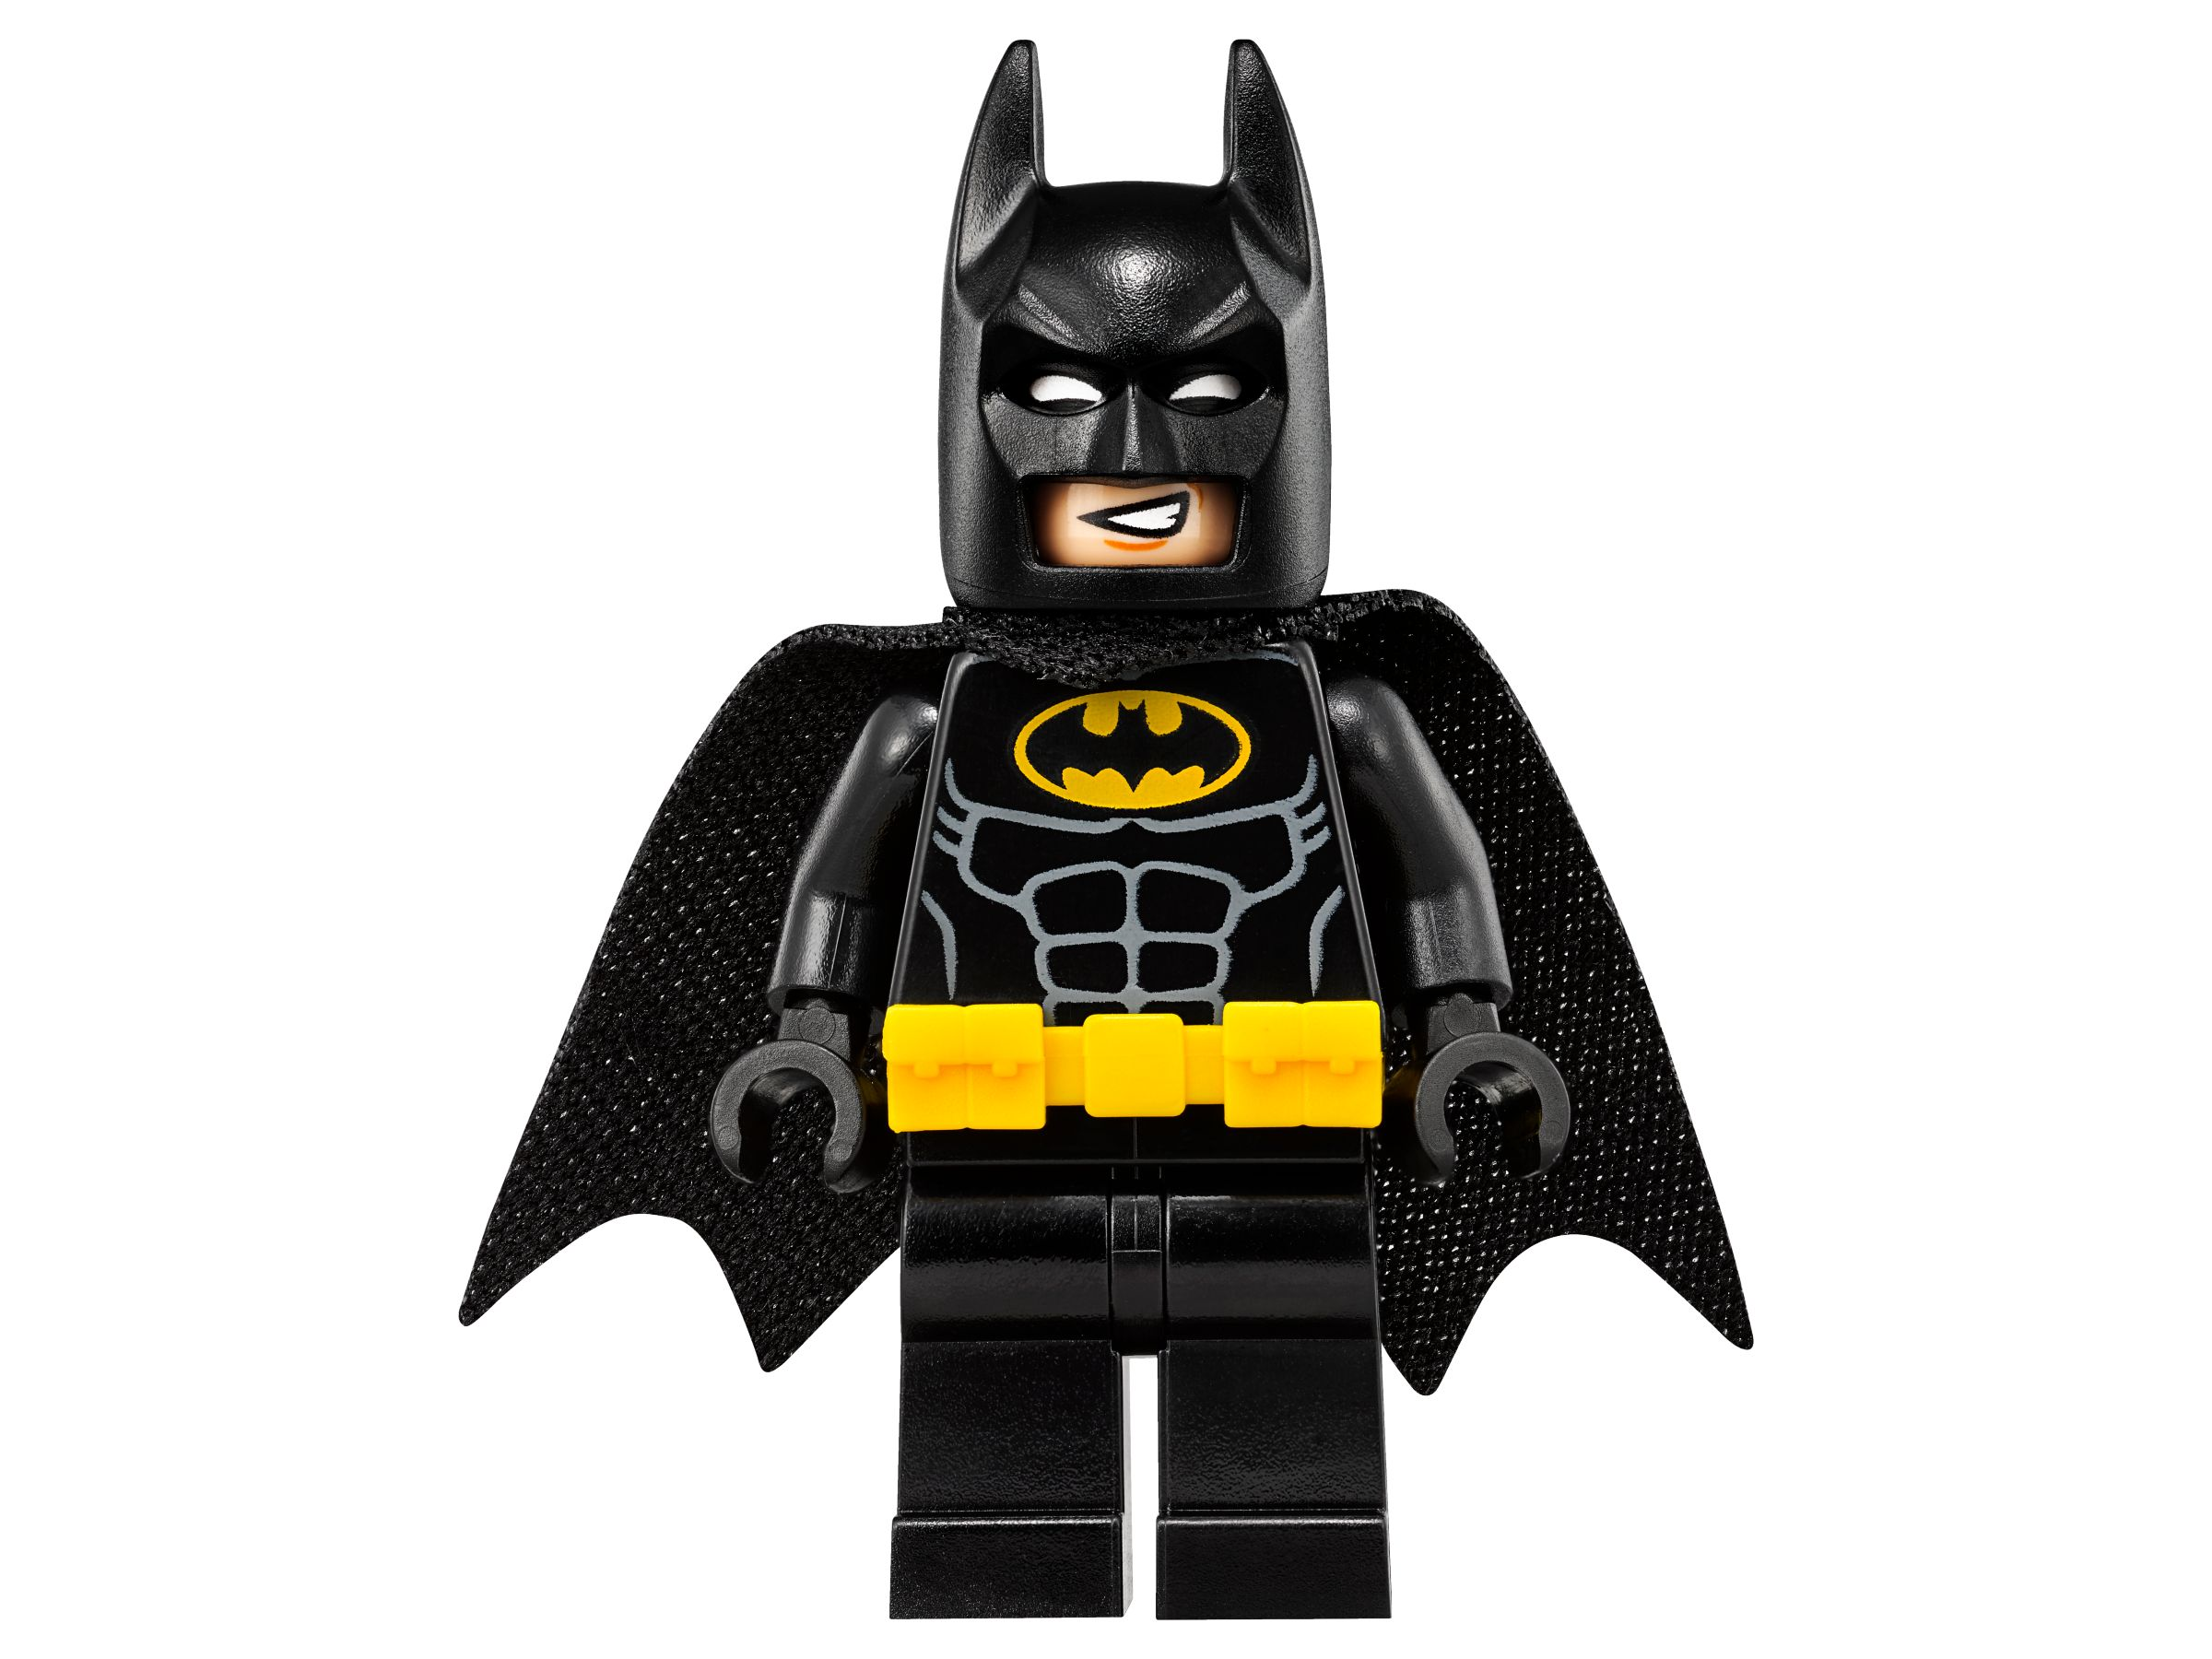 LEGO The LEGO Batman Movie 70918 Batman Dünenbuggy LEGO_70918_alt4.jpg